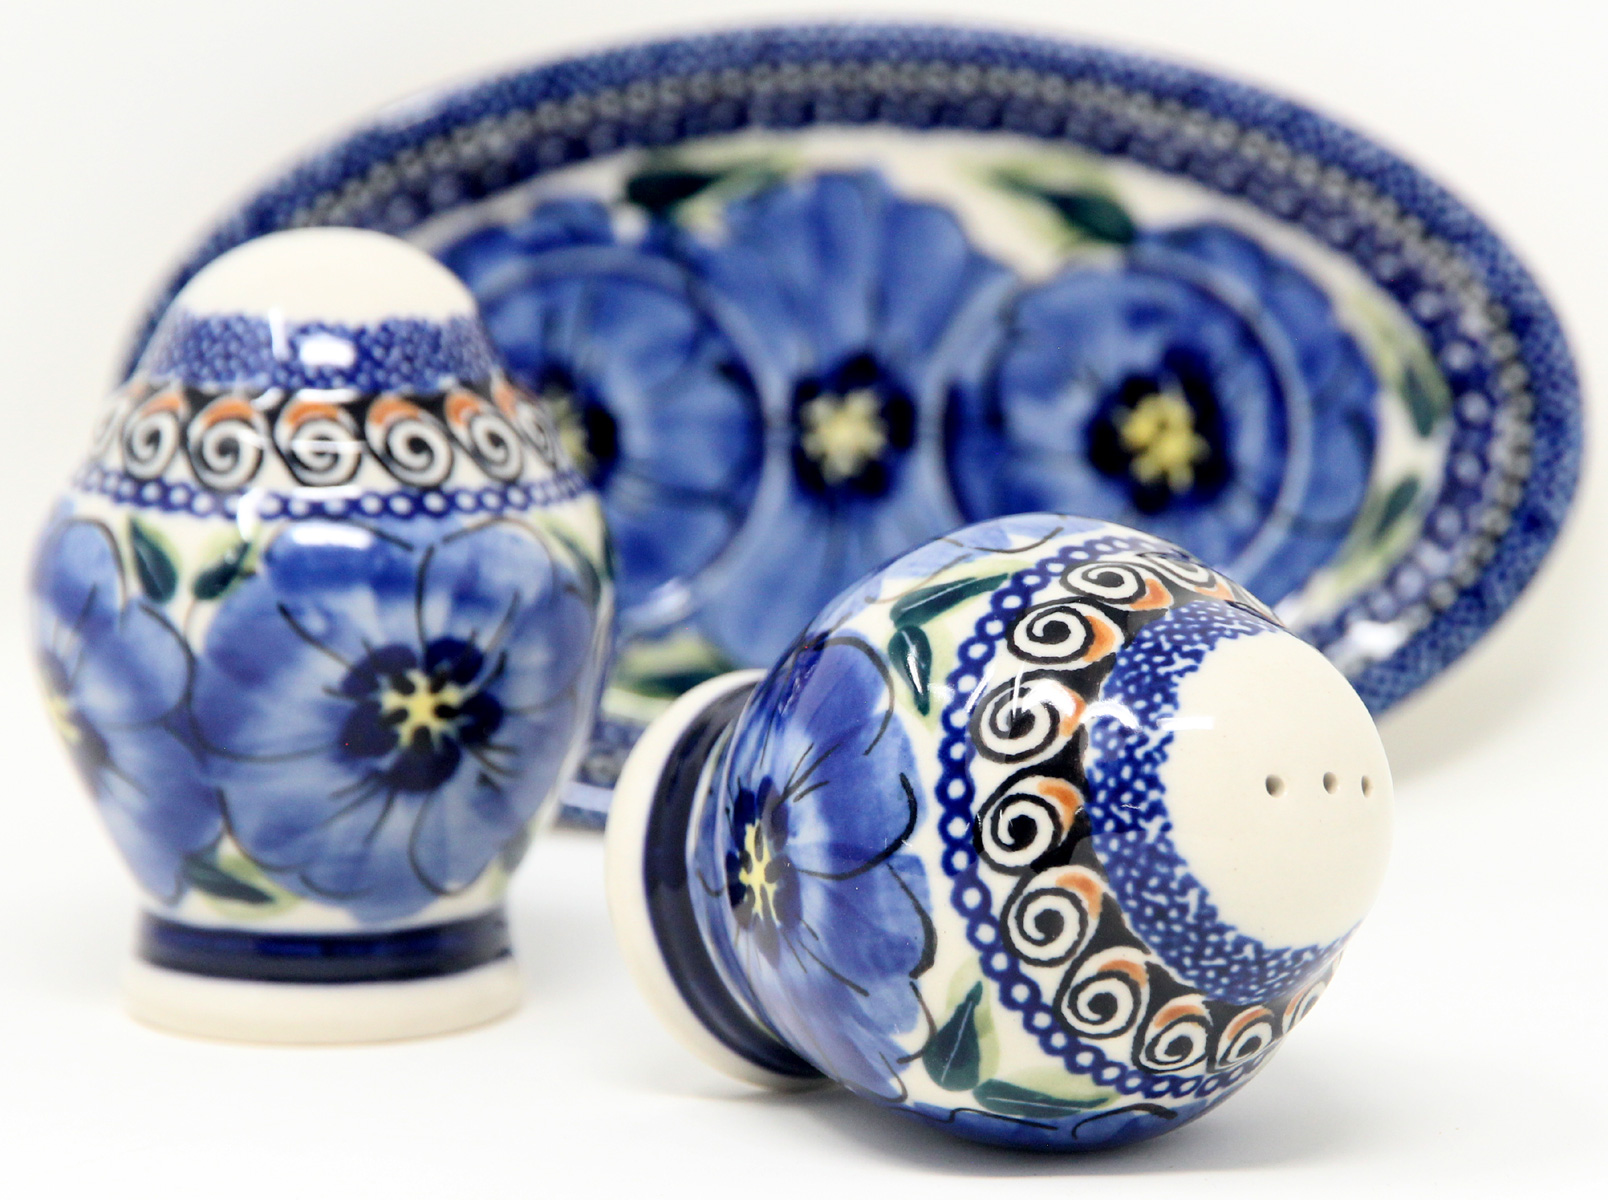 Salt and Pepper Shakers, Polish Pottery Painted by Maria Koman